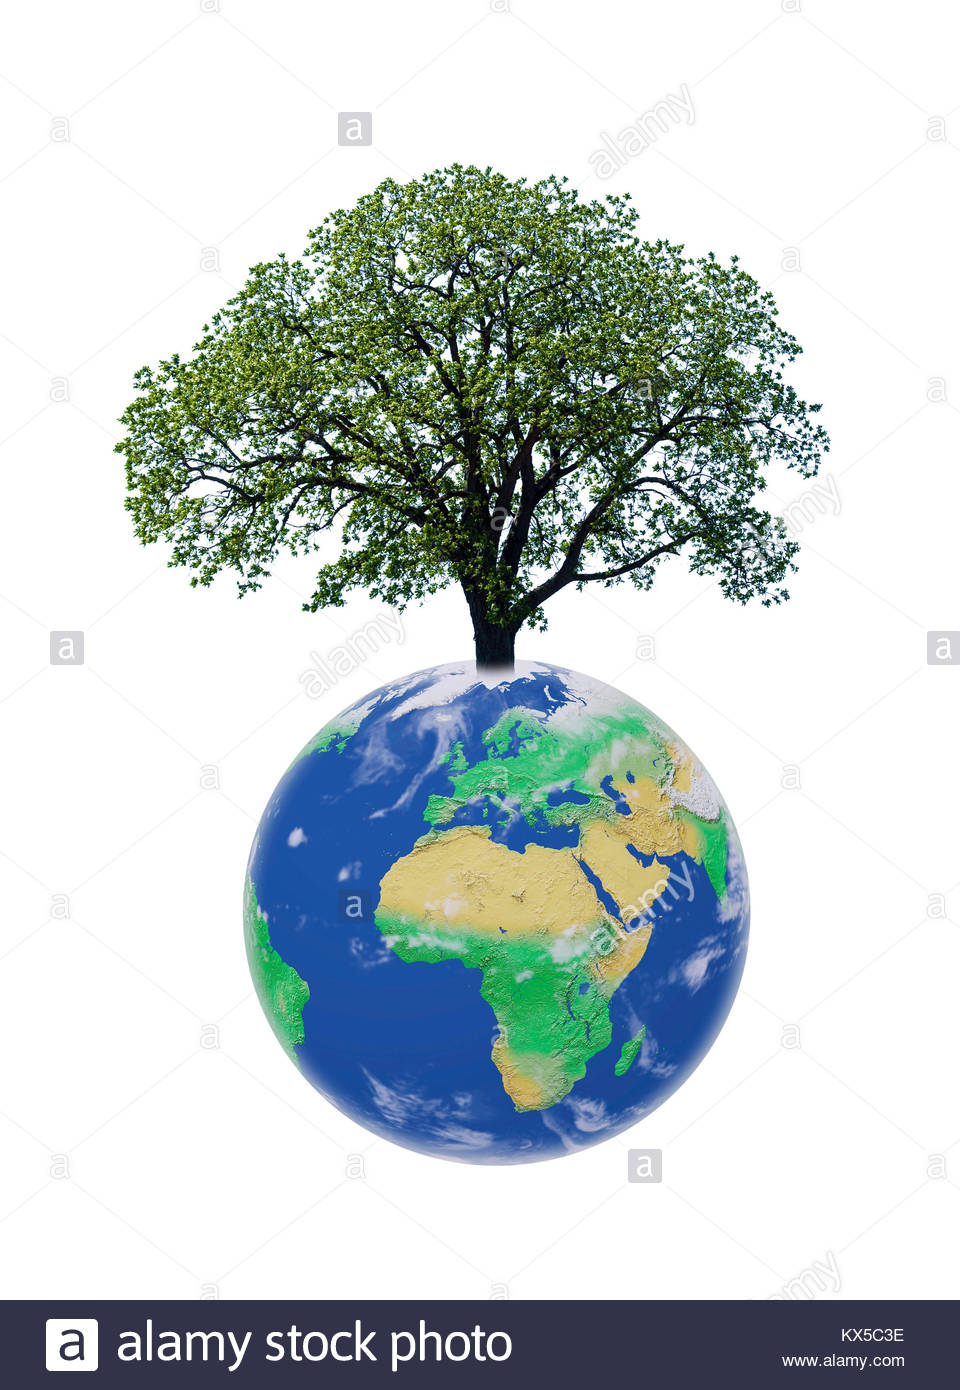 world-tree-on-the-planet-earth-the-inter